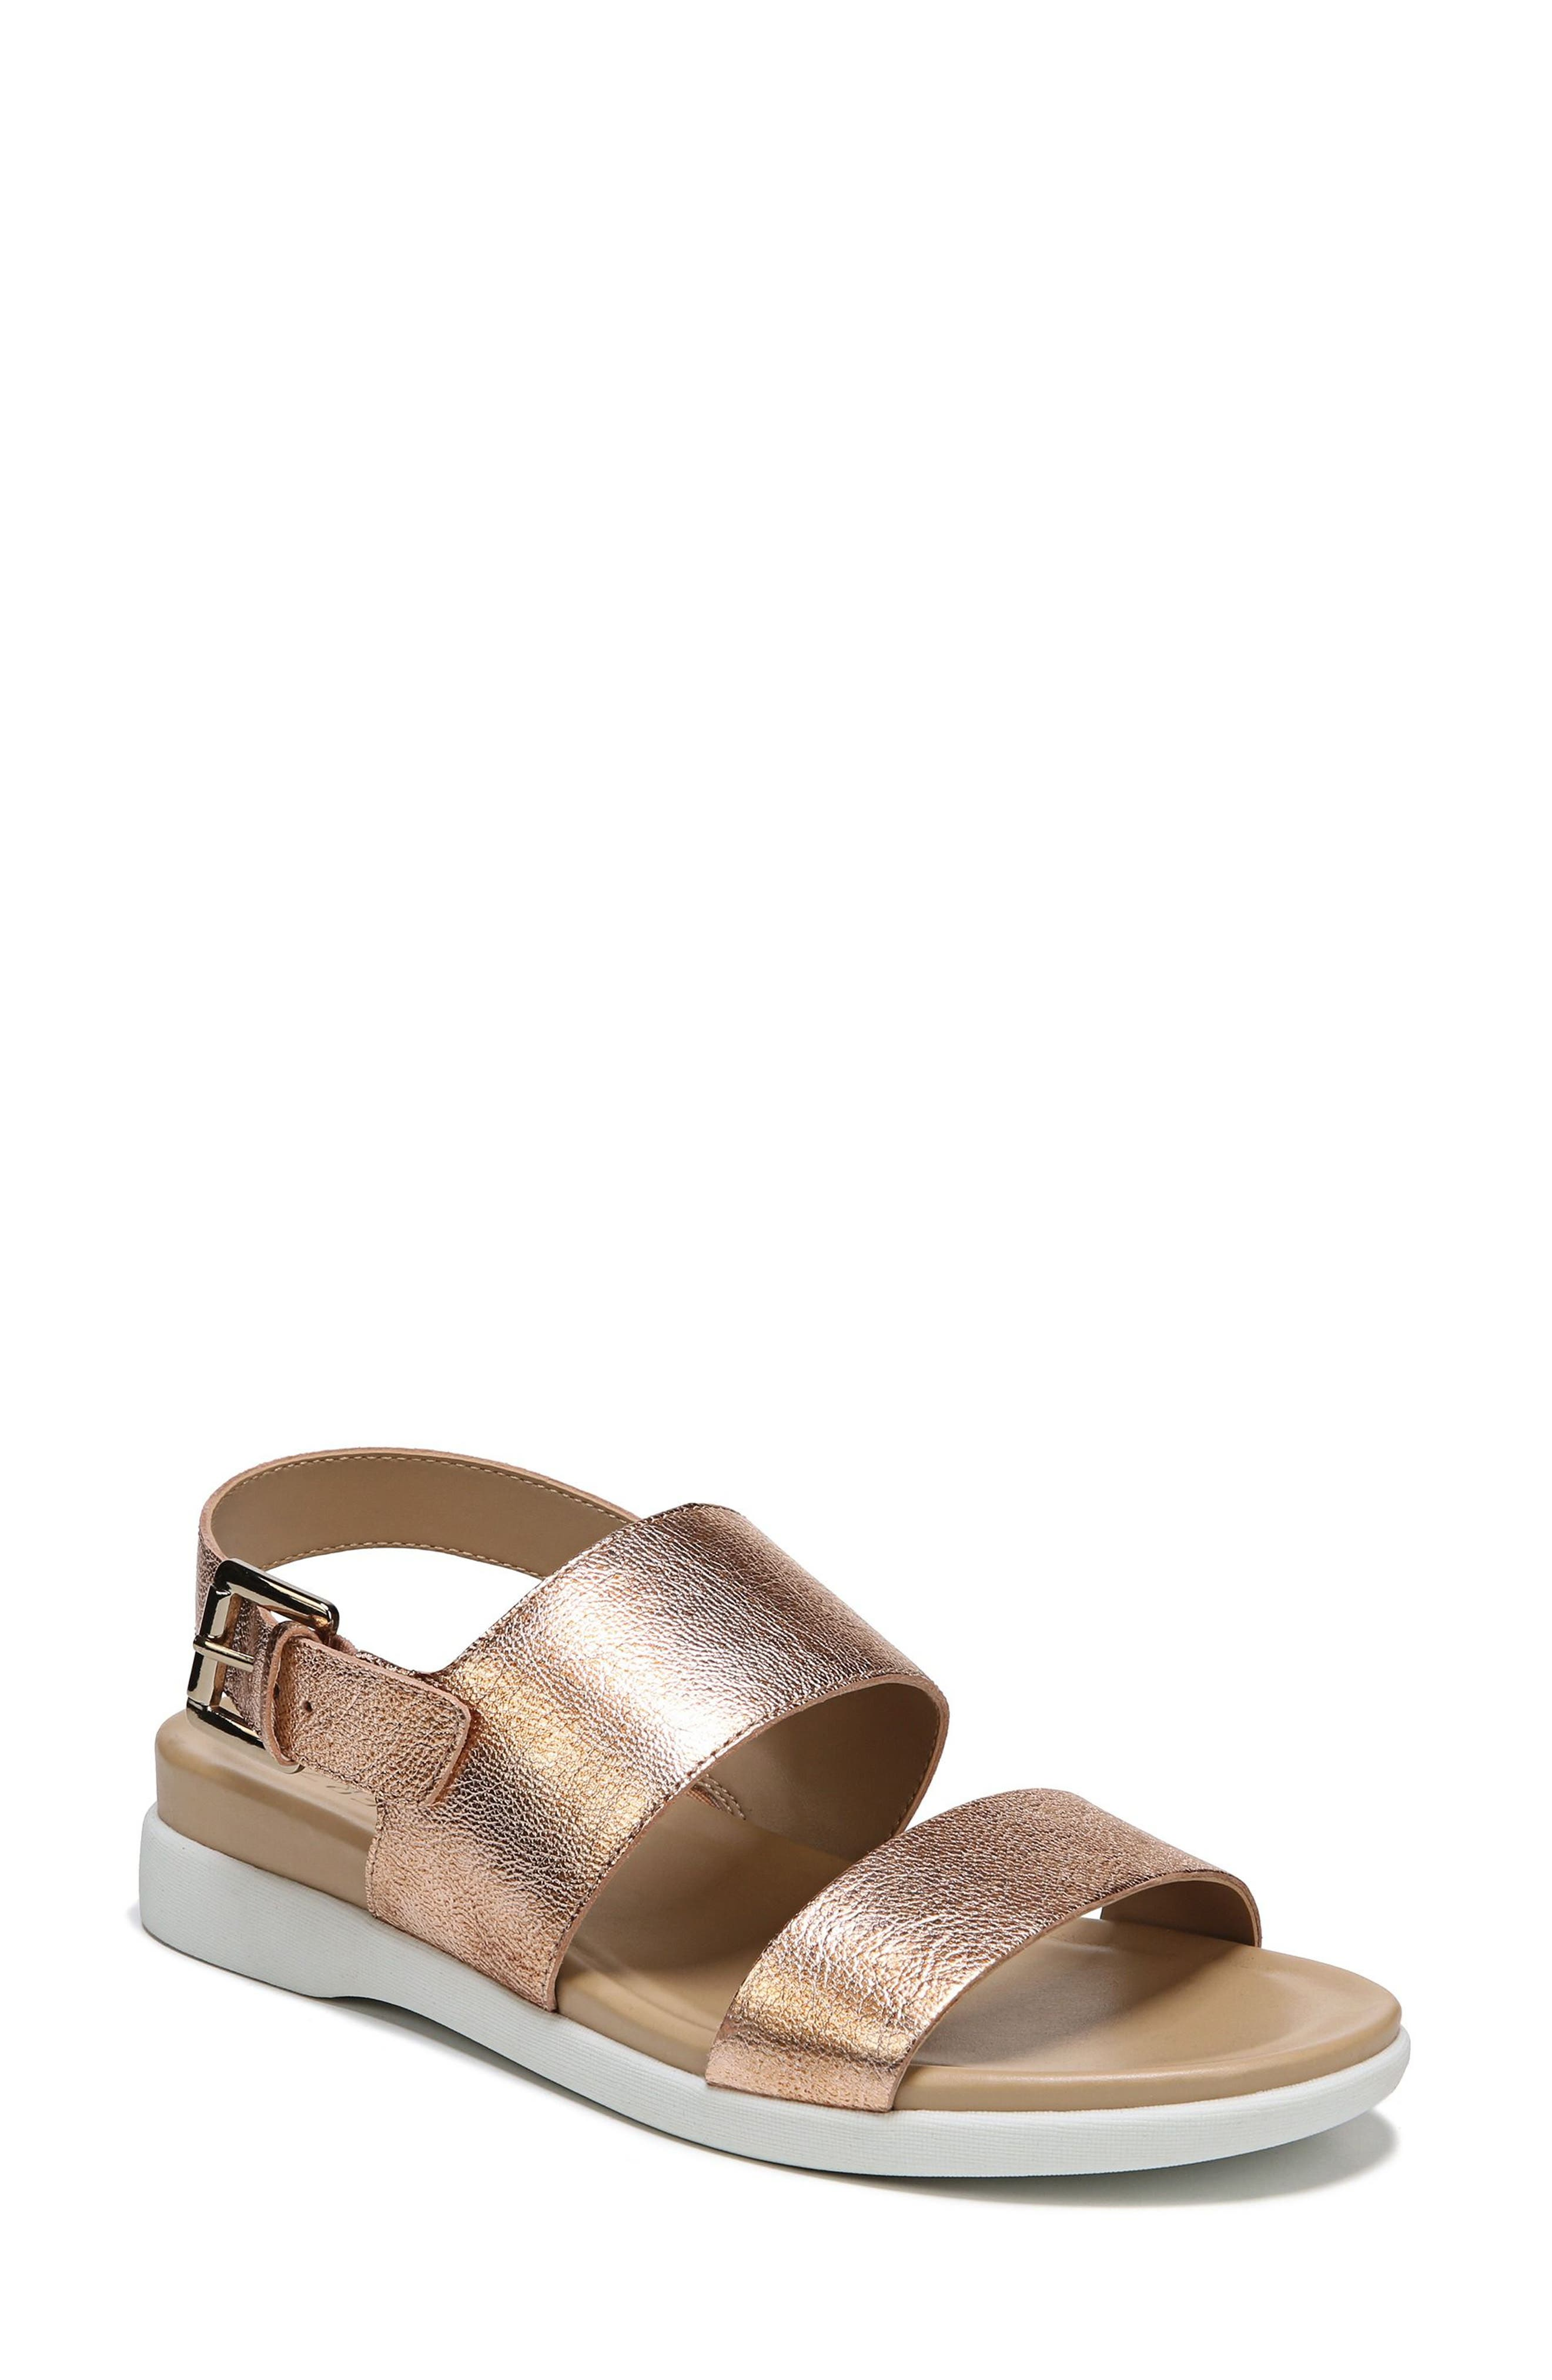 Emory Wedge Sandal,                         Main,                         color, Copper Leather